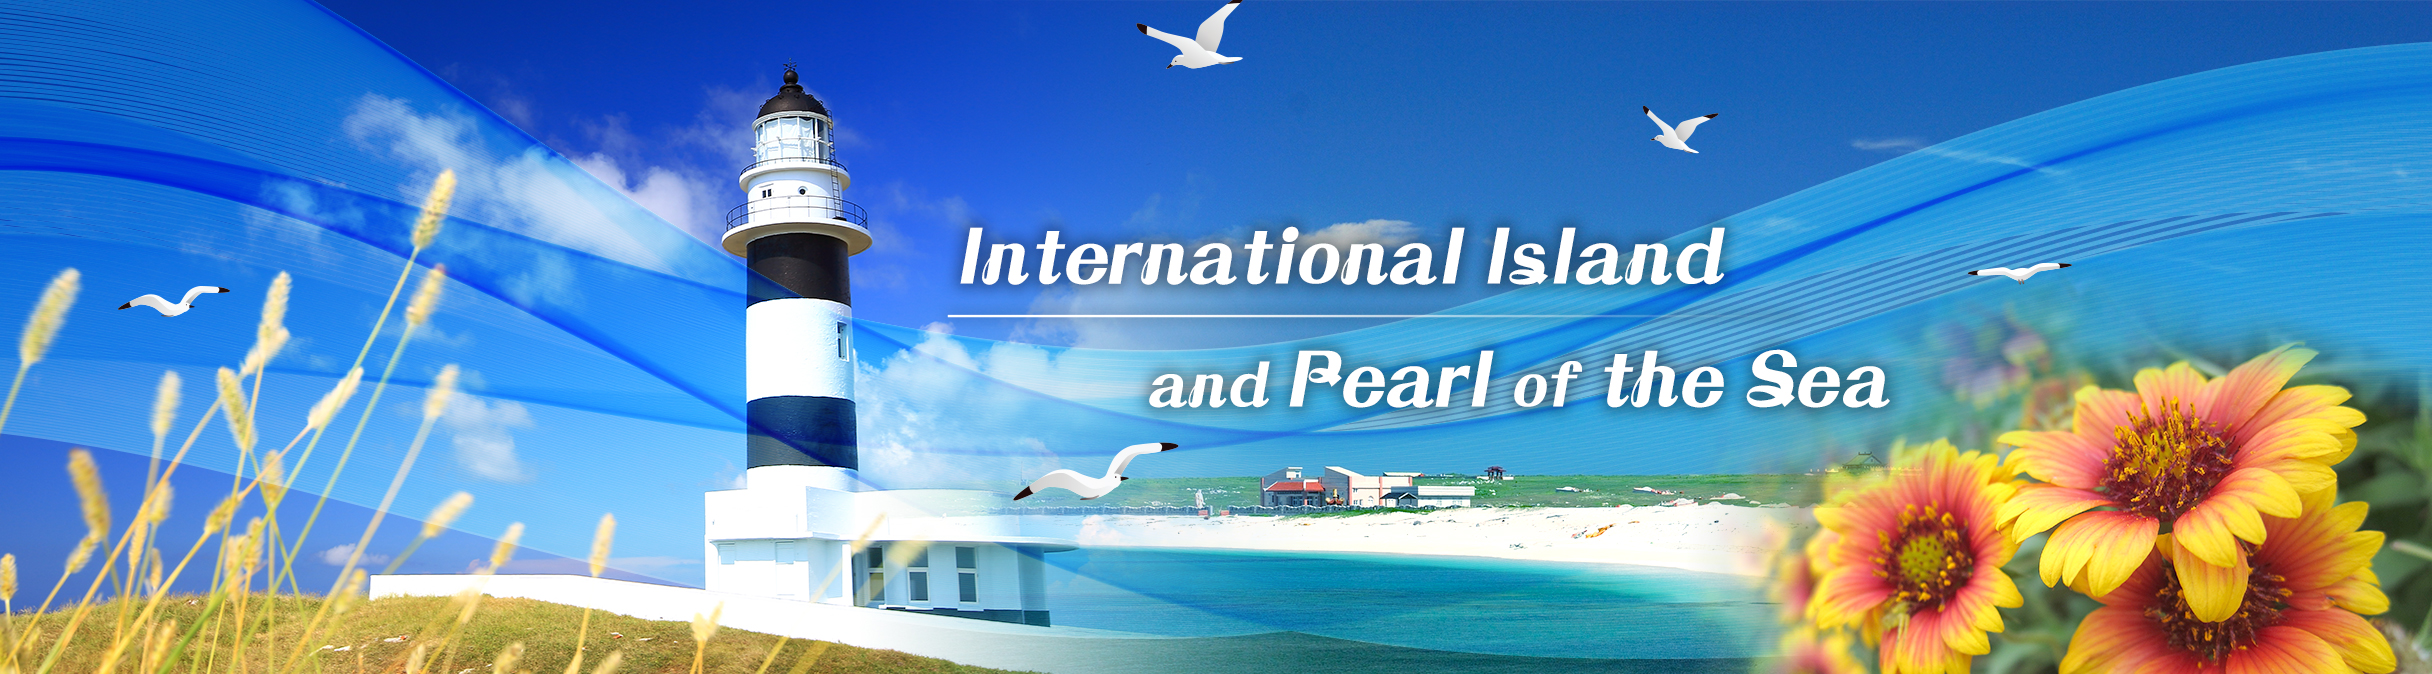 International Island and Pearl of the Sea(Open new window)